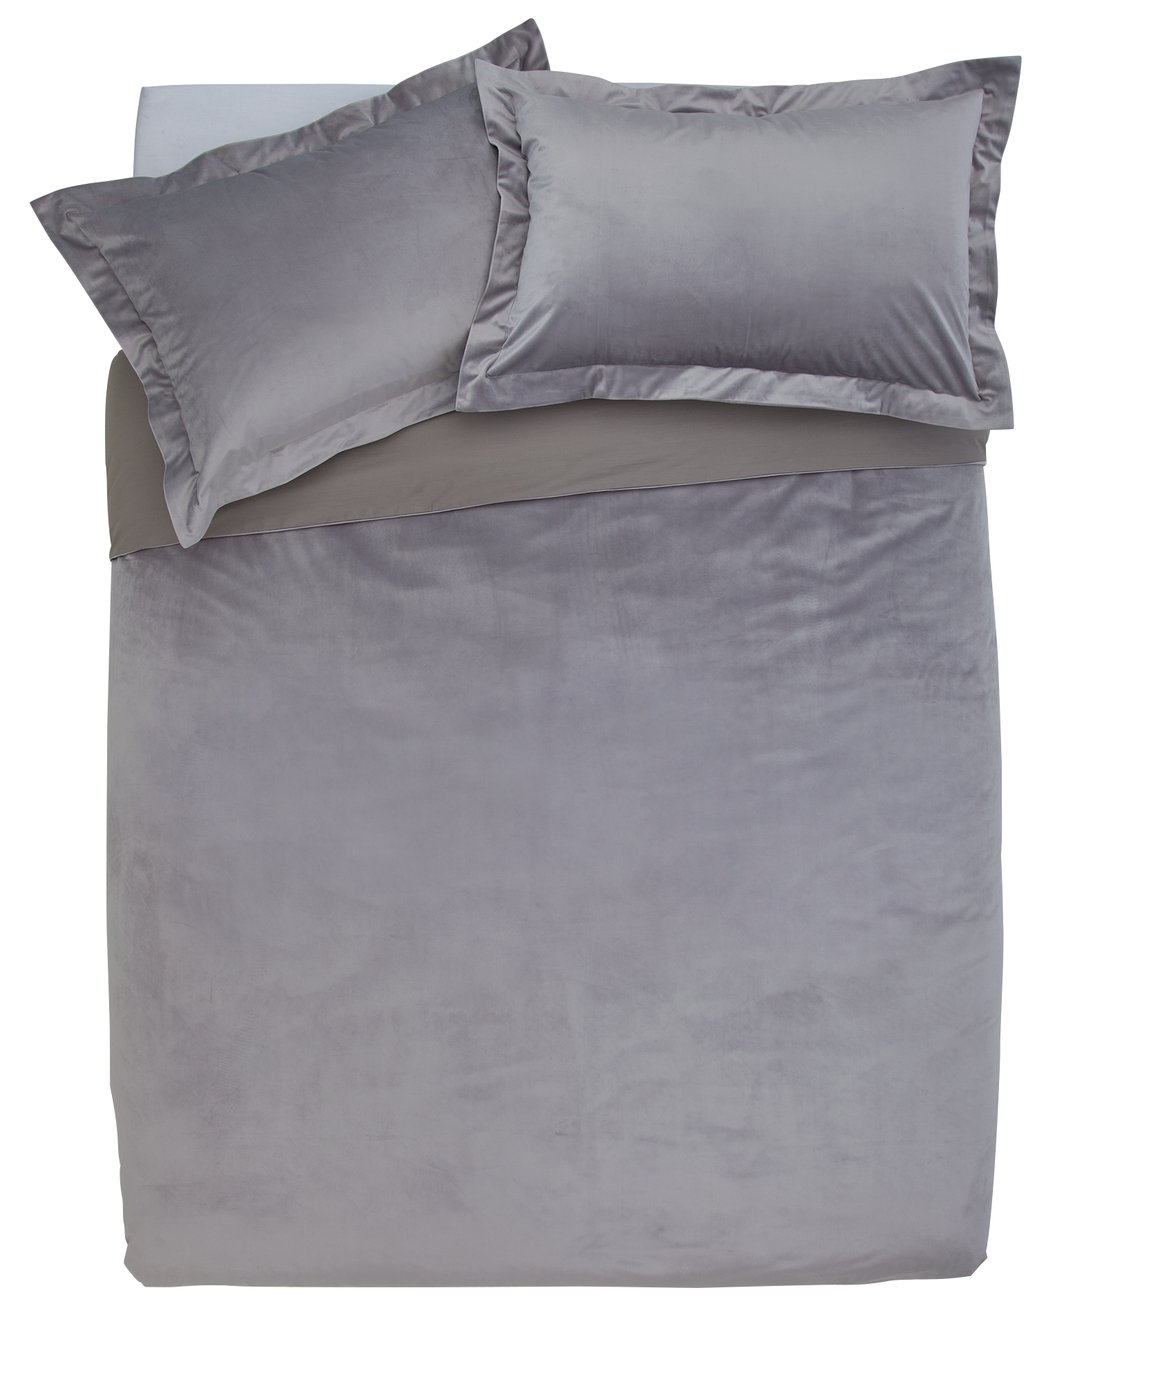 Argos Home Grey Velvet Bedding Set - Superking